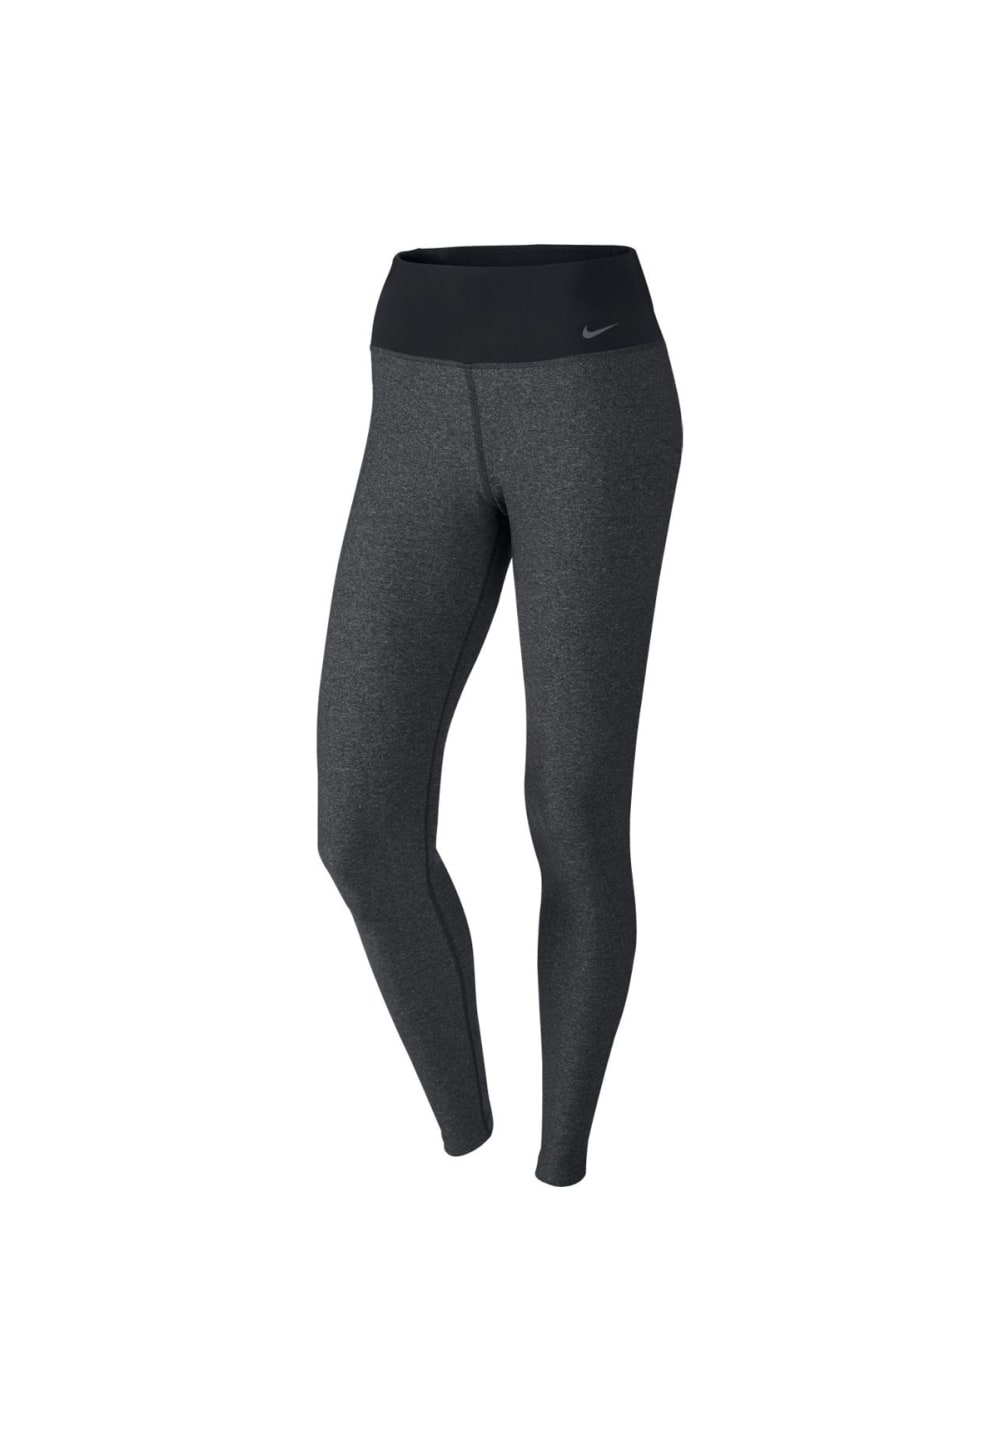 Image of Nike Legend 2.0 Tights Poly Laufhosen Damen 48-50 Dunkelgrau